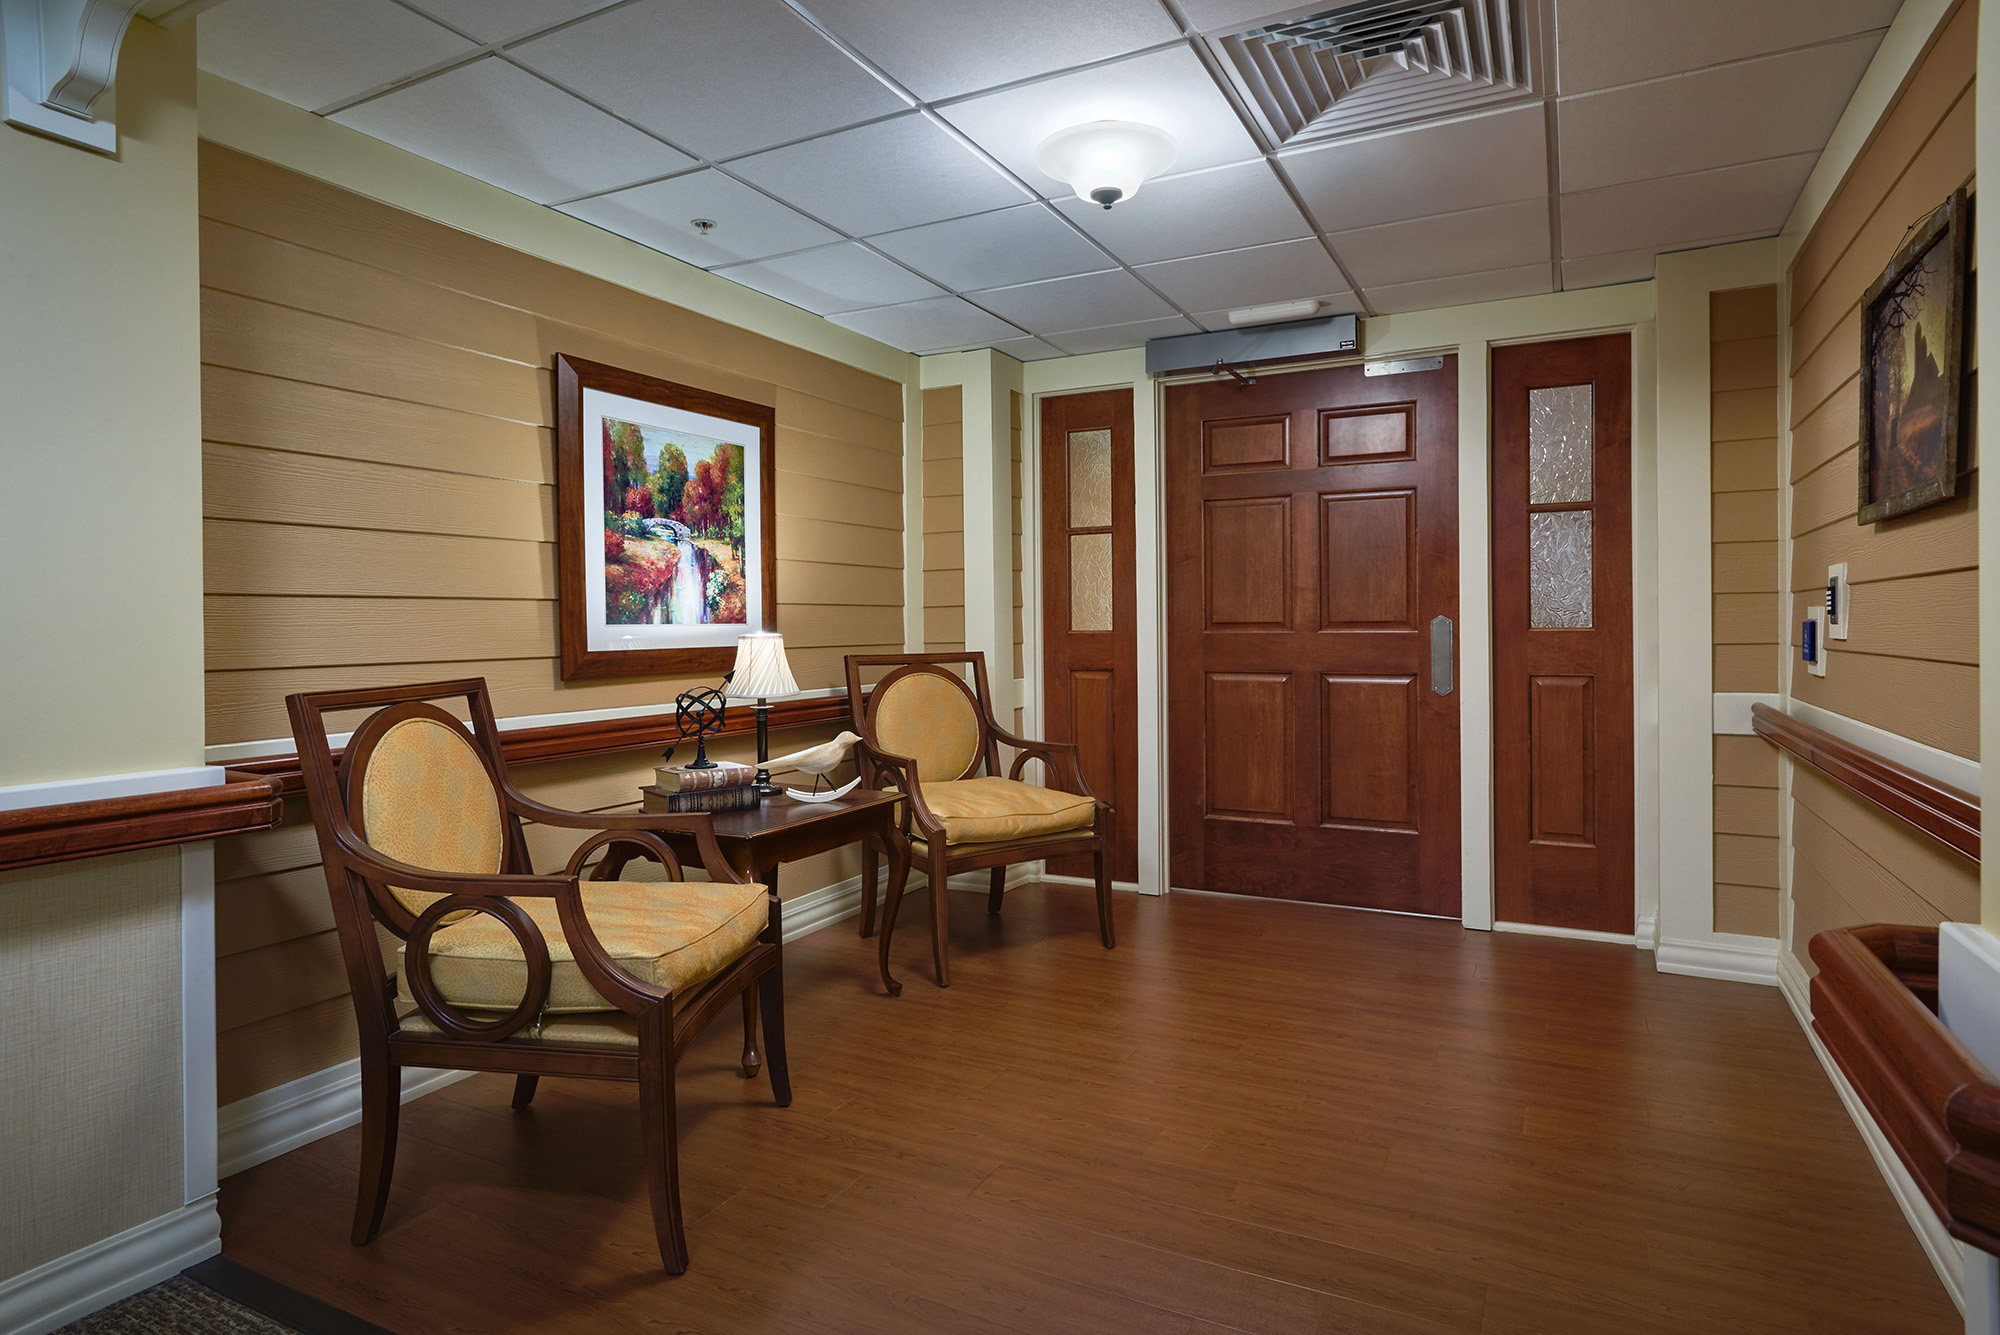 From hospital to hospitality interior design for senior - Senior living interior design firms ...